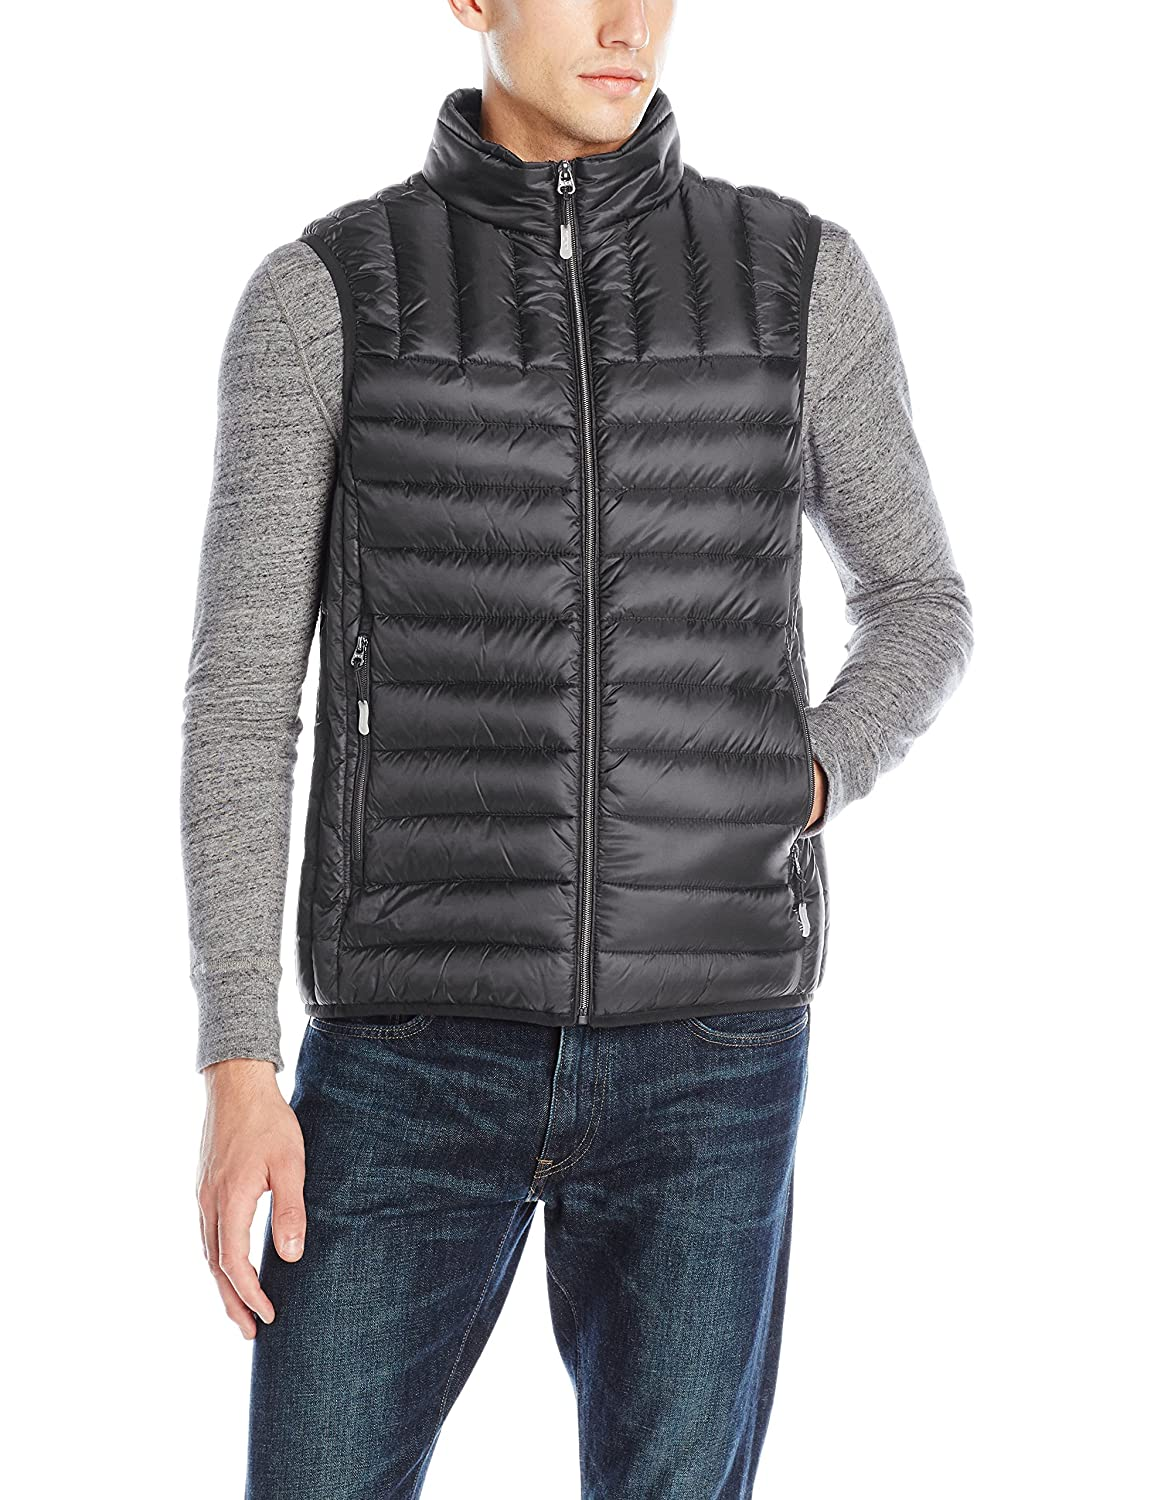 Tumi Men's Packable Puffer Vest Tumi Men' s Outerwear (Weatherproof) F67125